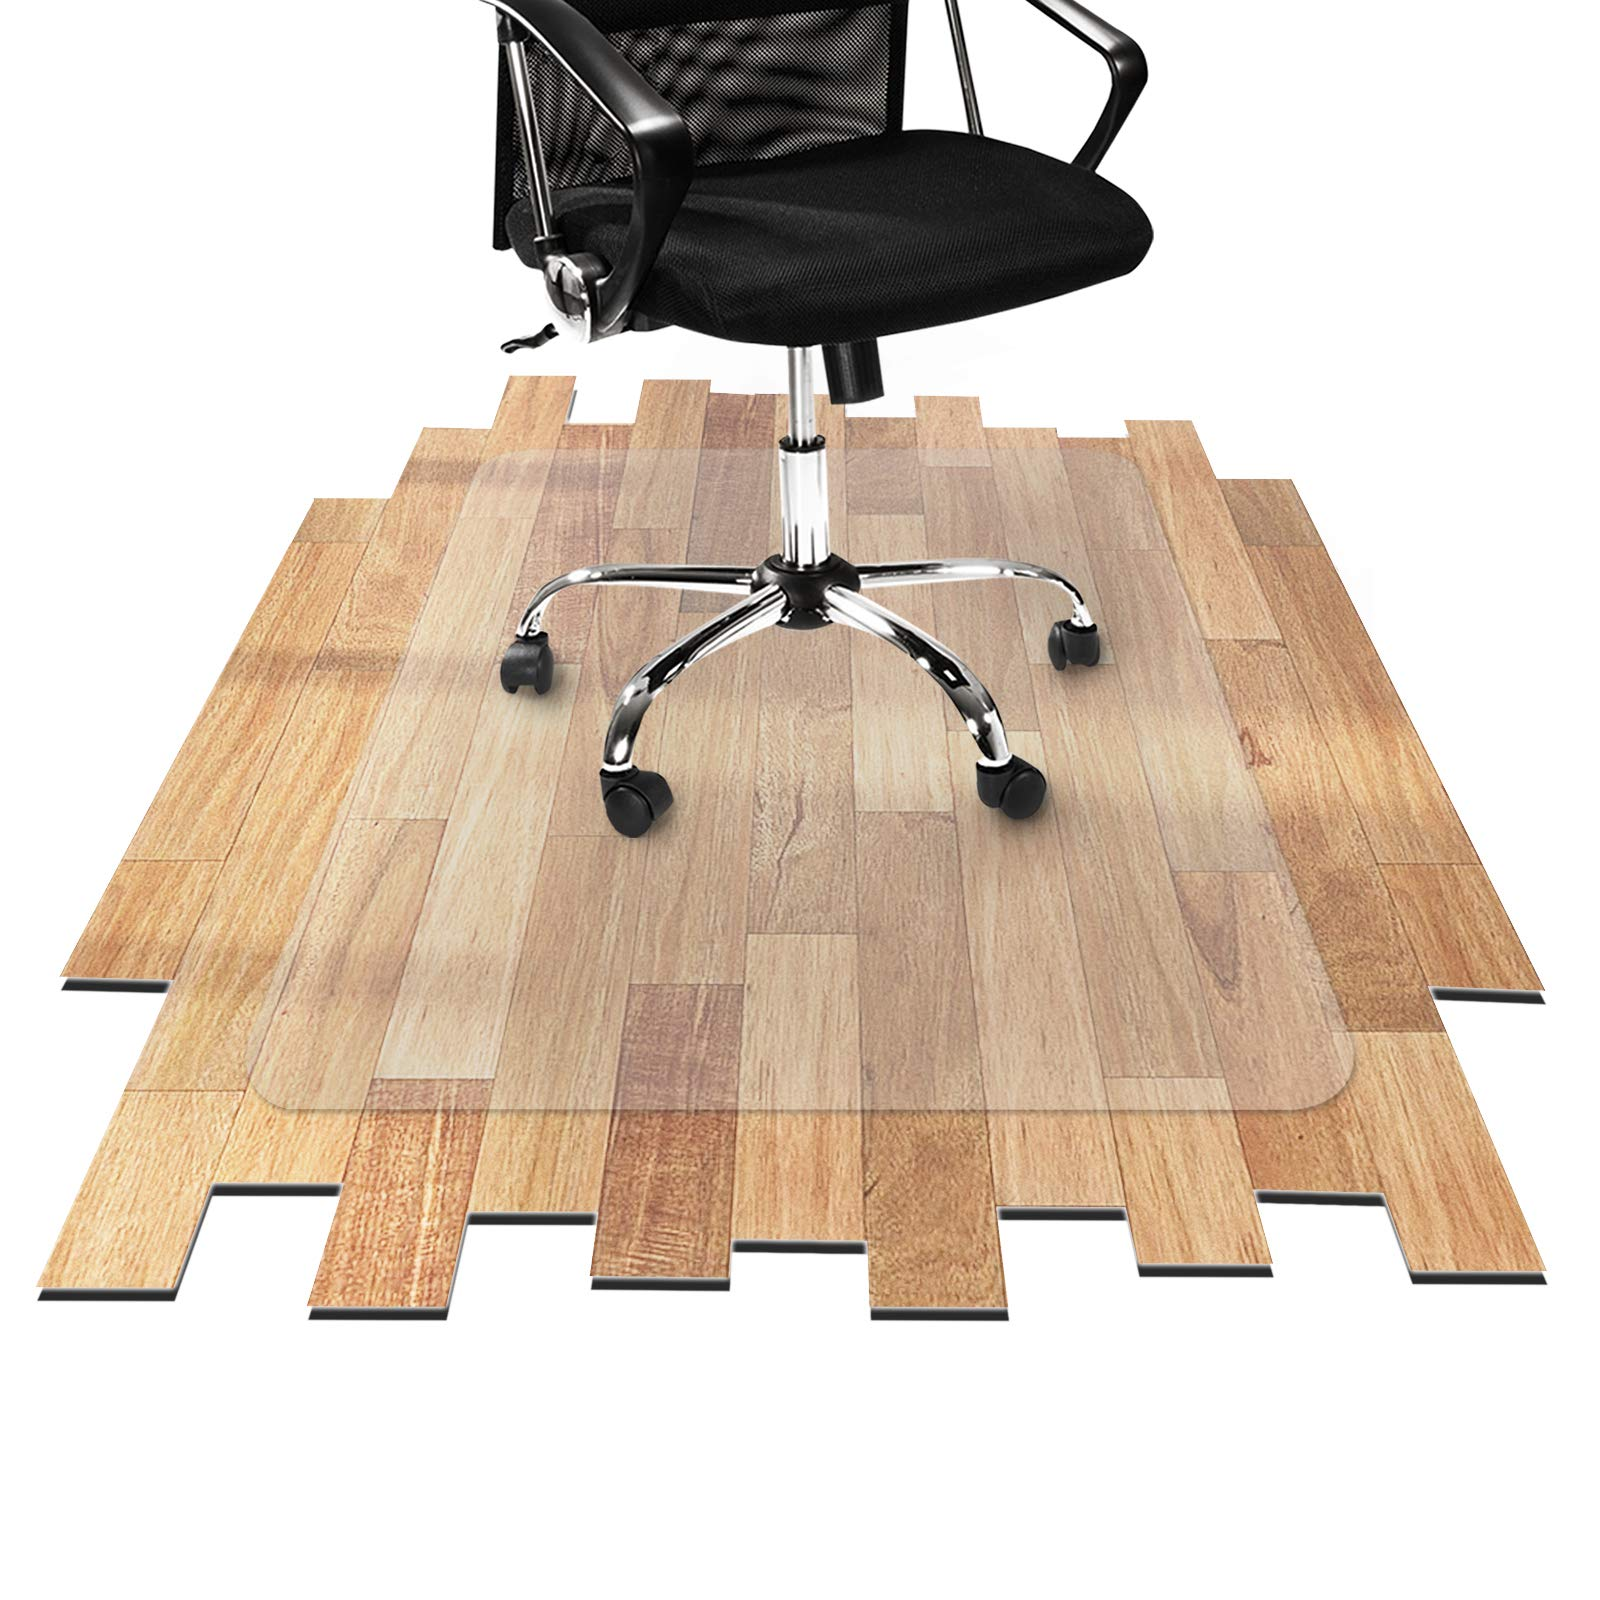 Desk Chair Mat for Hardwood Floor - Hard Floor Protection Mat for Office & Home | Many Sizes Available | Clear - 48'' x 80'' by OfficeMarshal